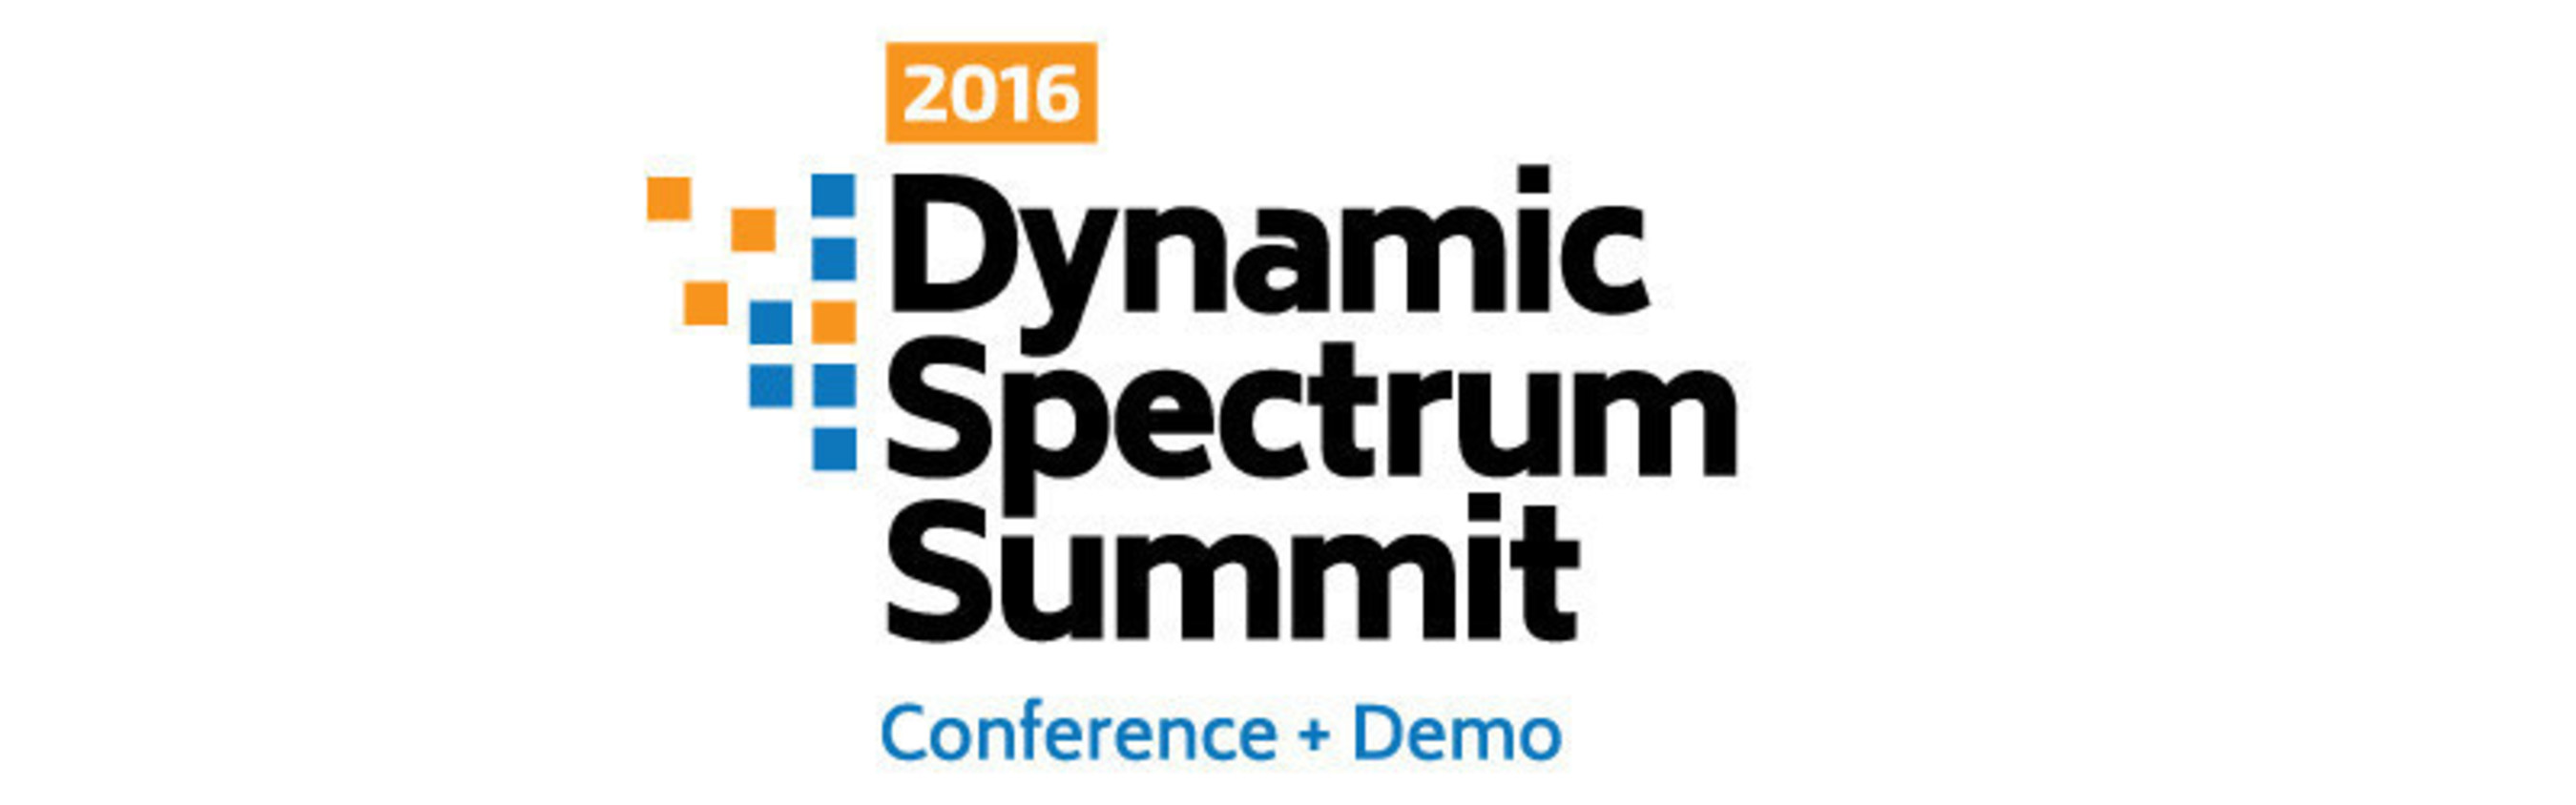 Penton's IWCE 2016 to Host the Dynamic Spectrum Sharing Summit + Demo in March in Las Vegas